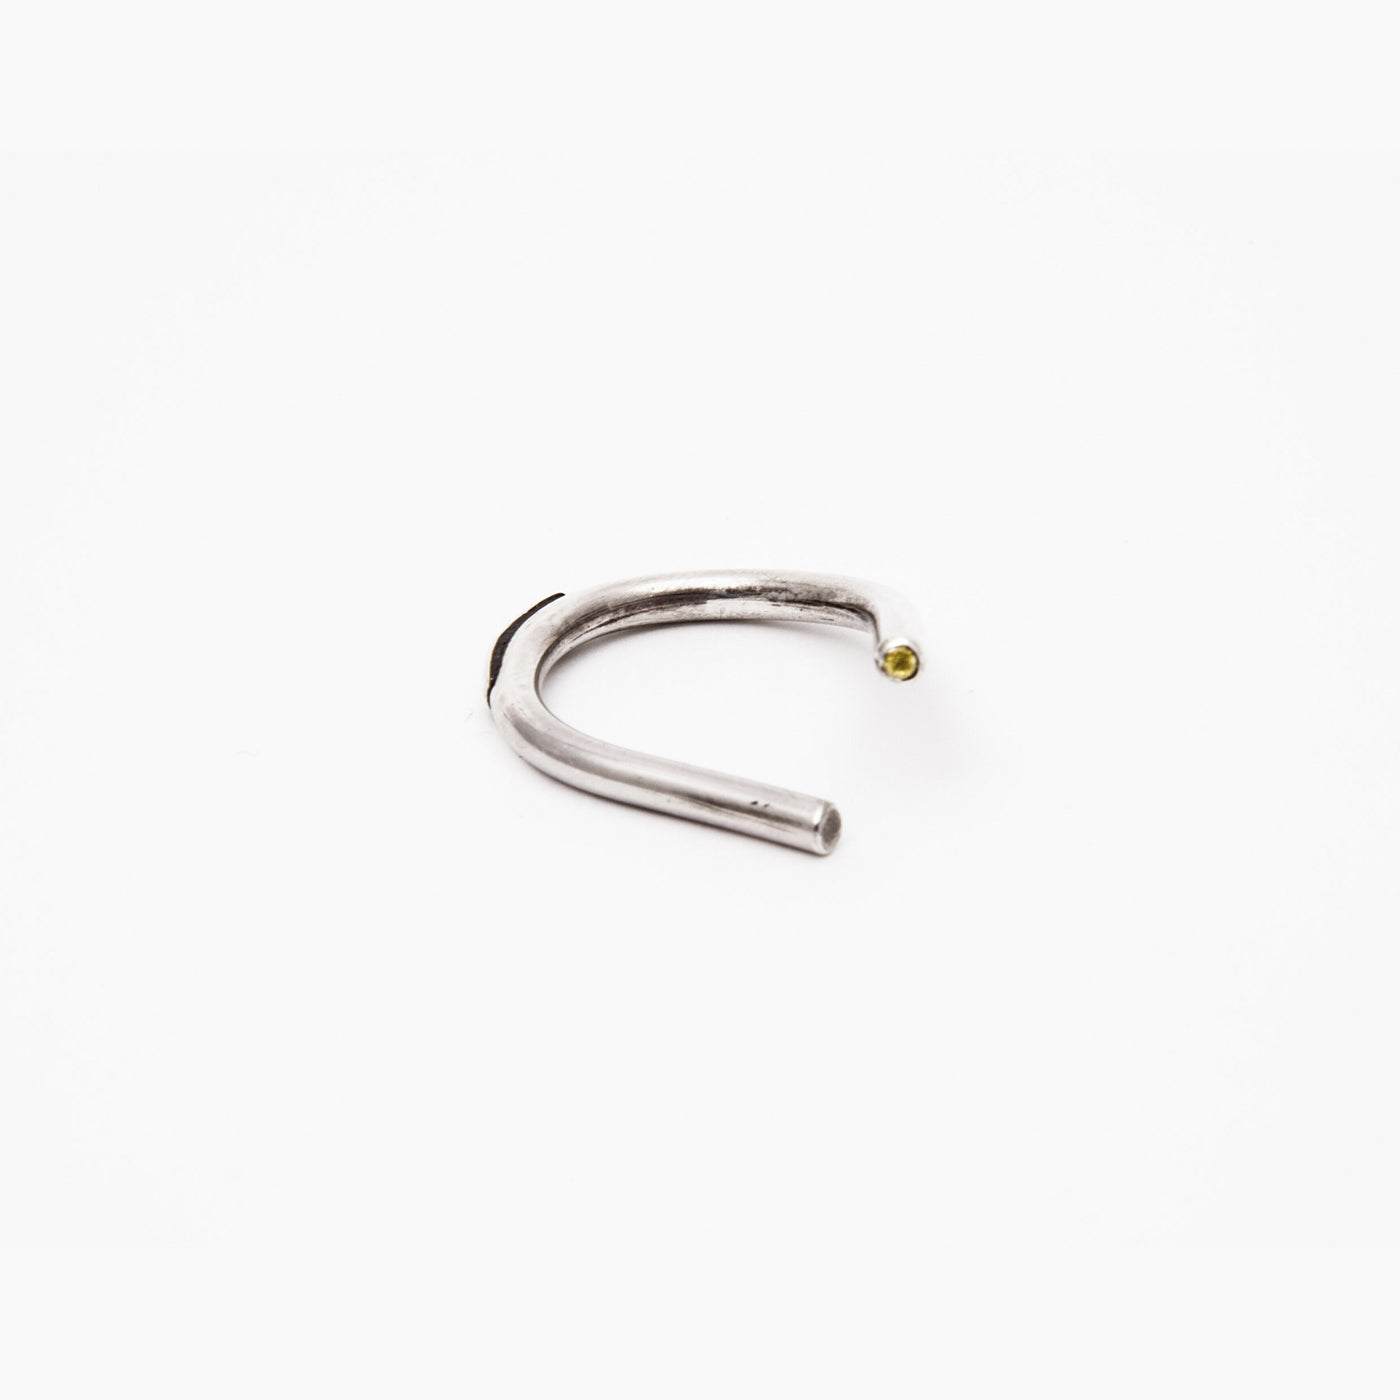 INNAN Jewellery designer Chaotic Curve Ring in sterling silver with yellow sapphire handmade in Berlin